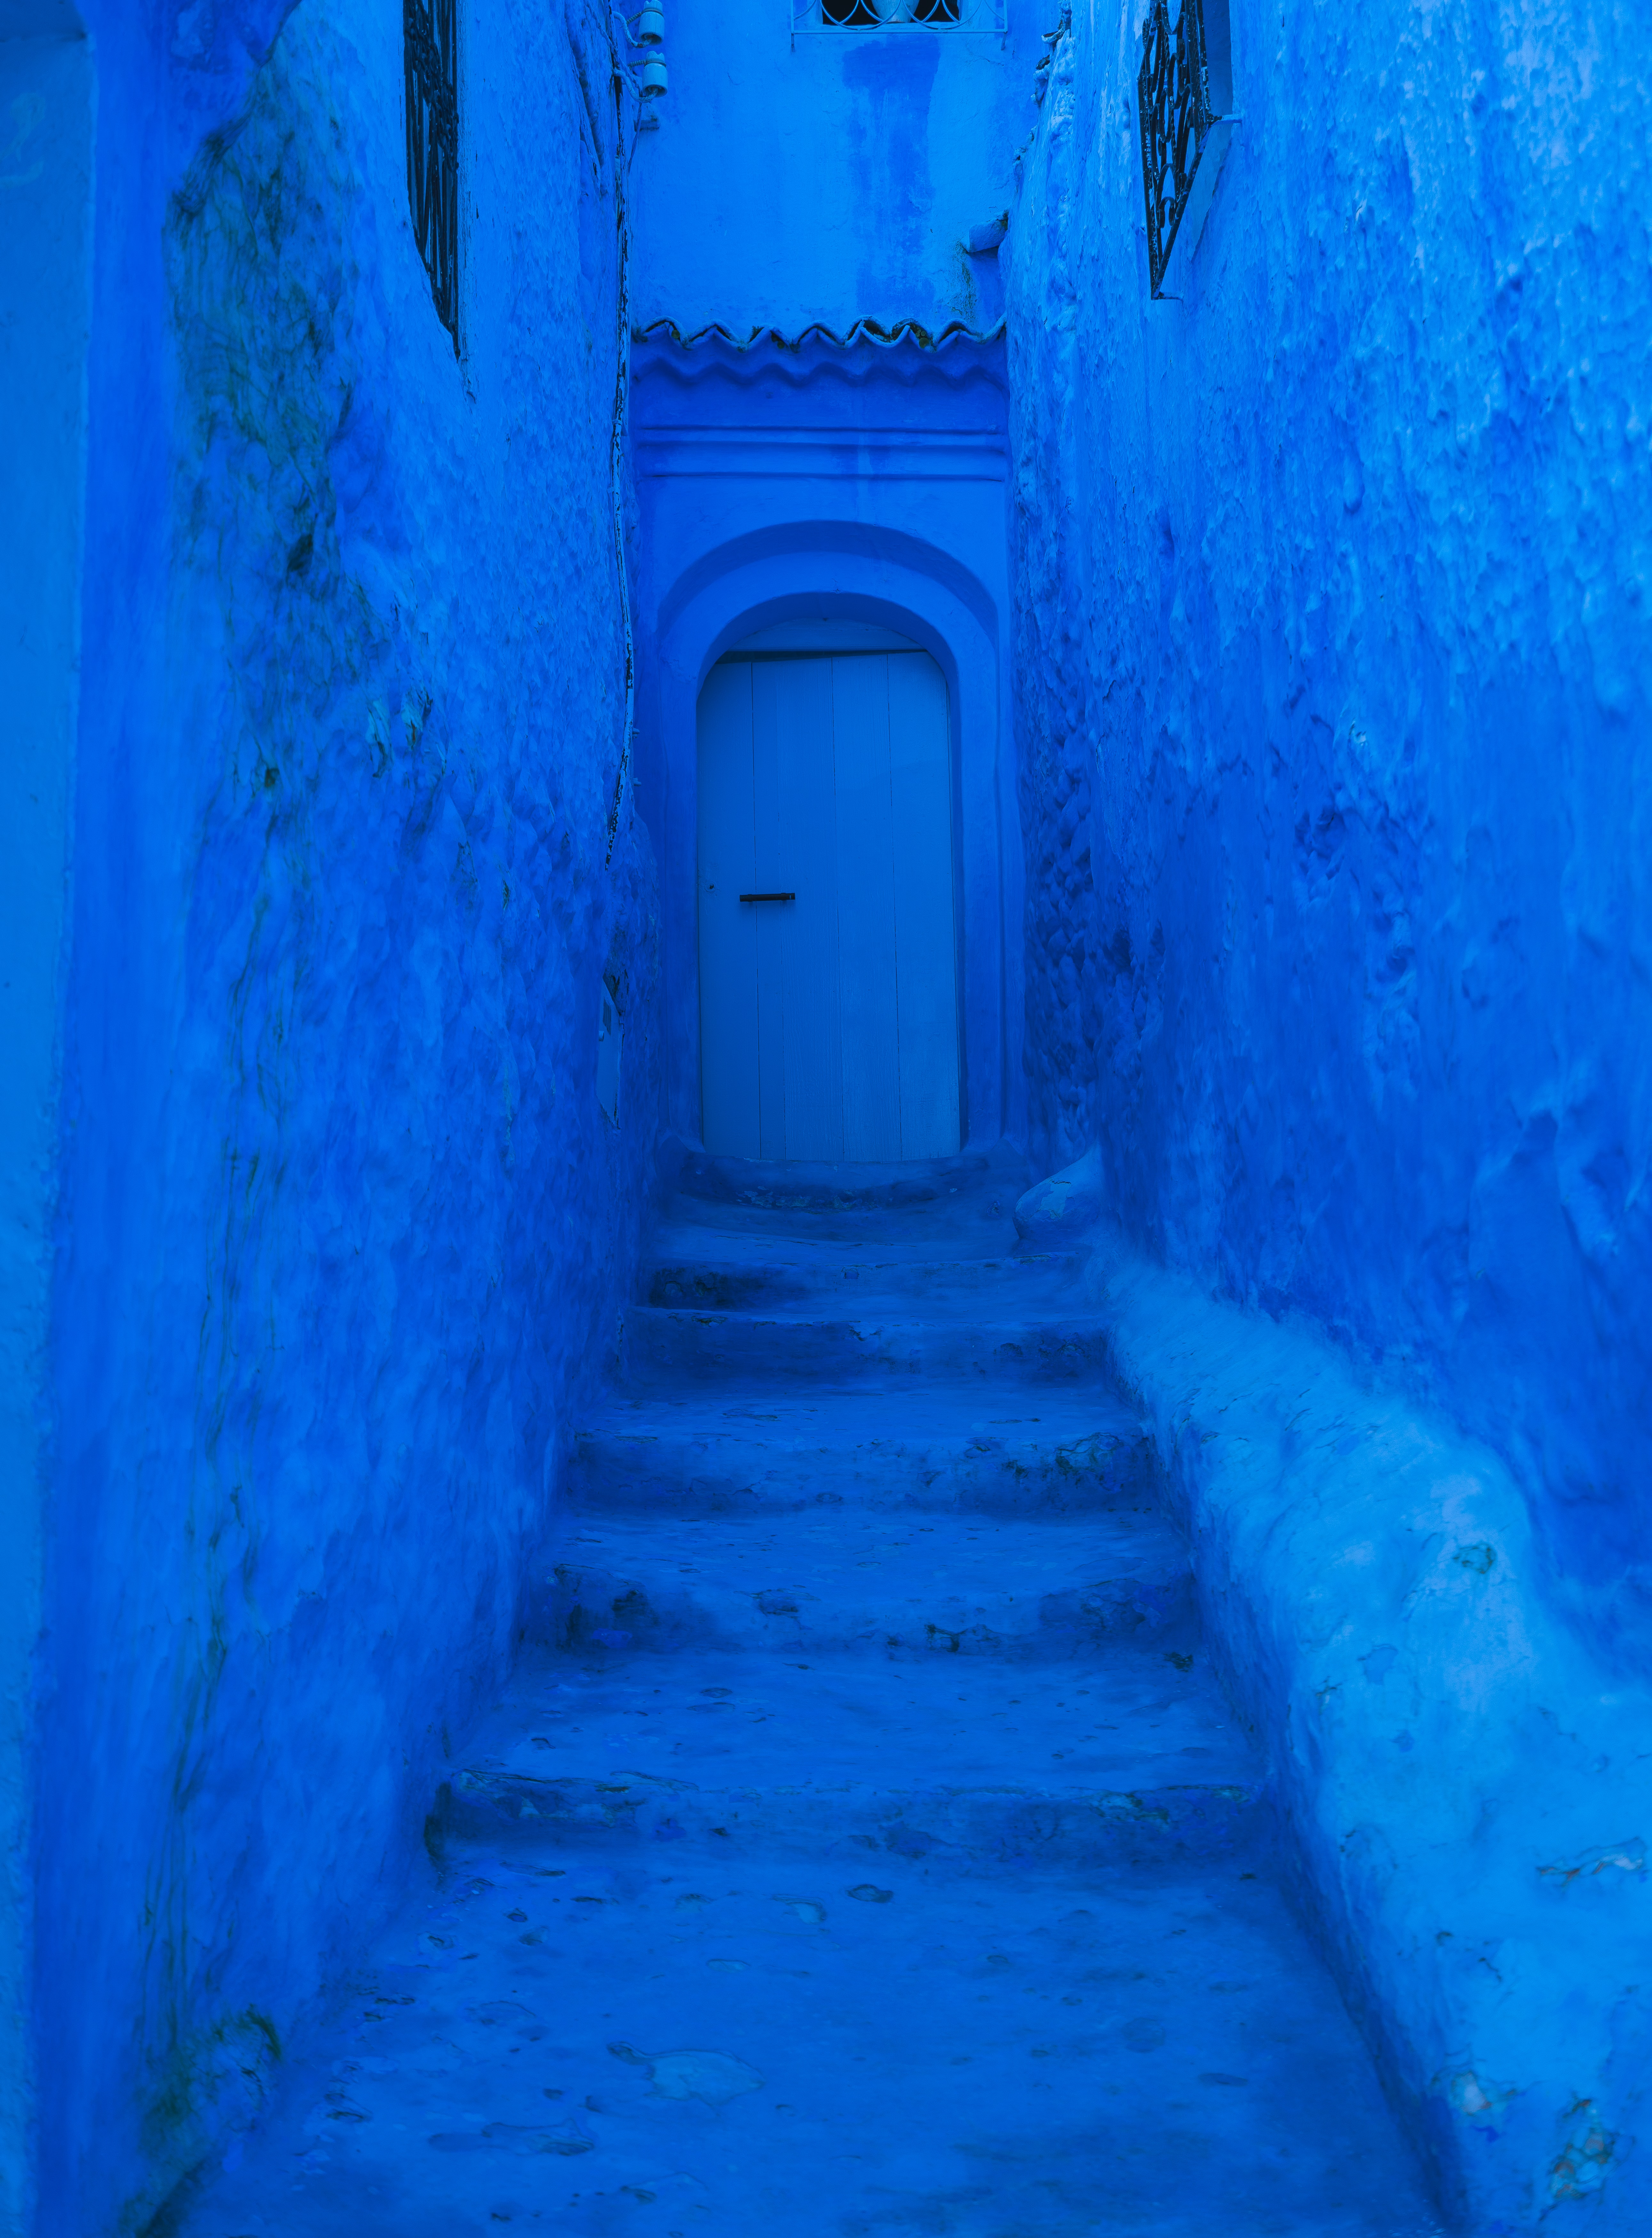 closed door and blue painted wall